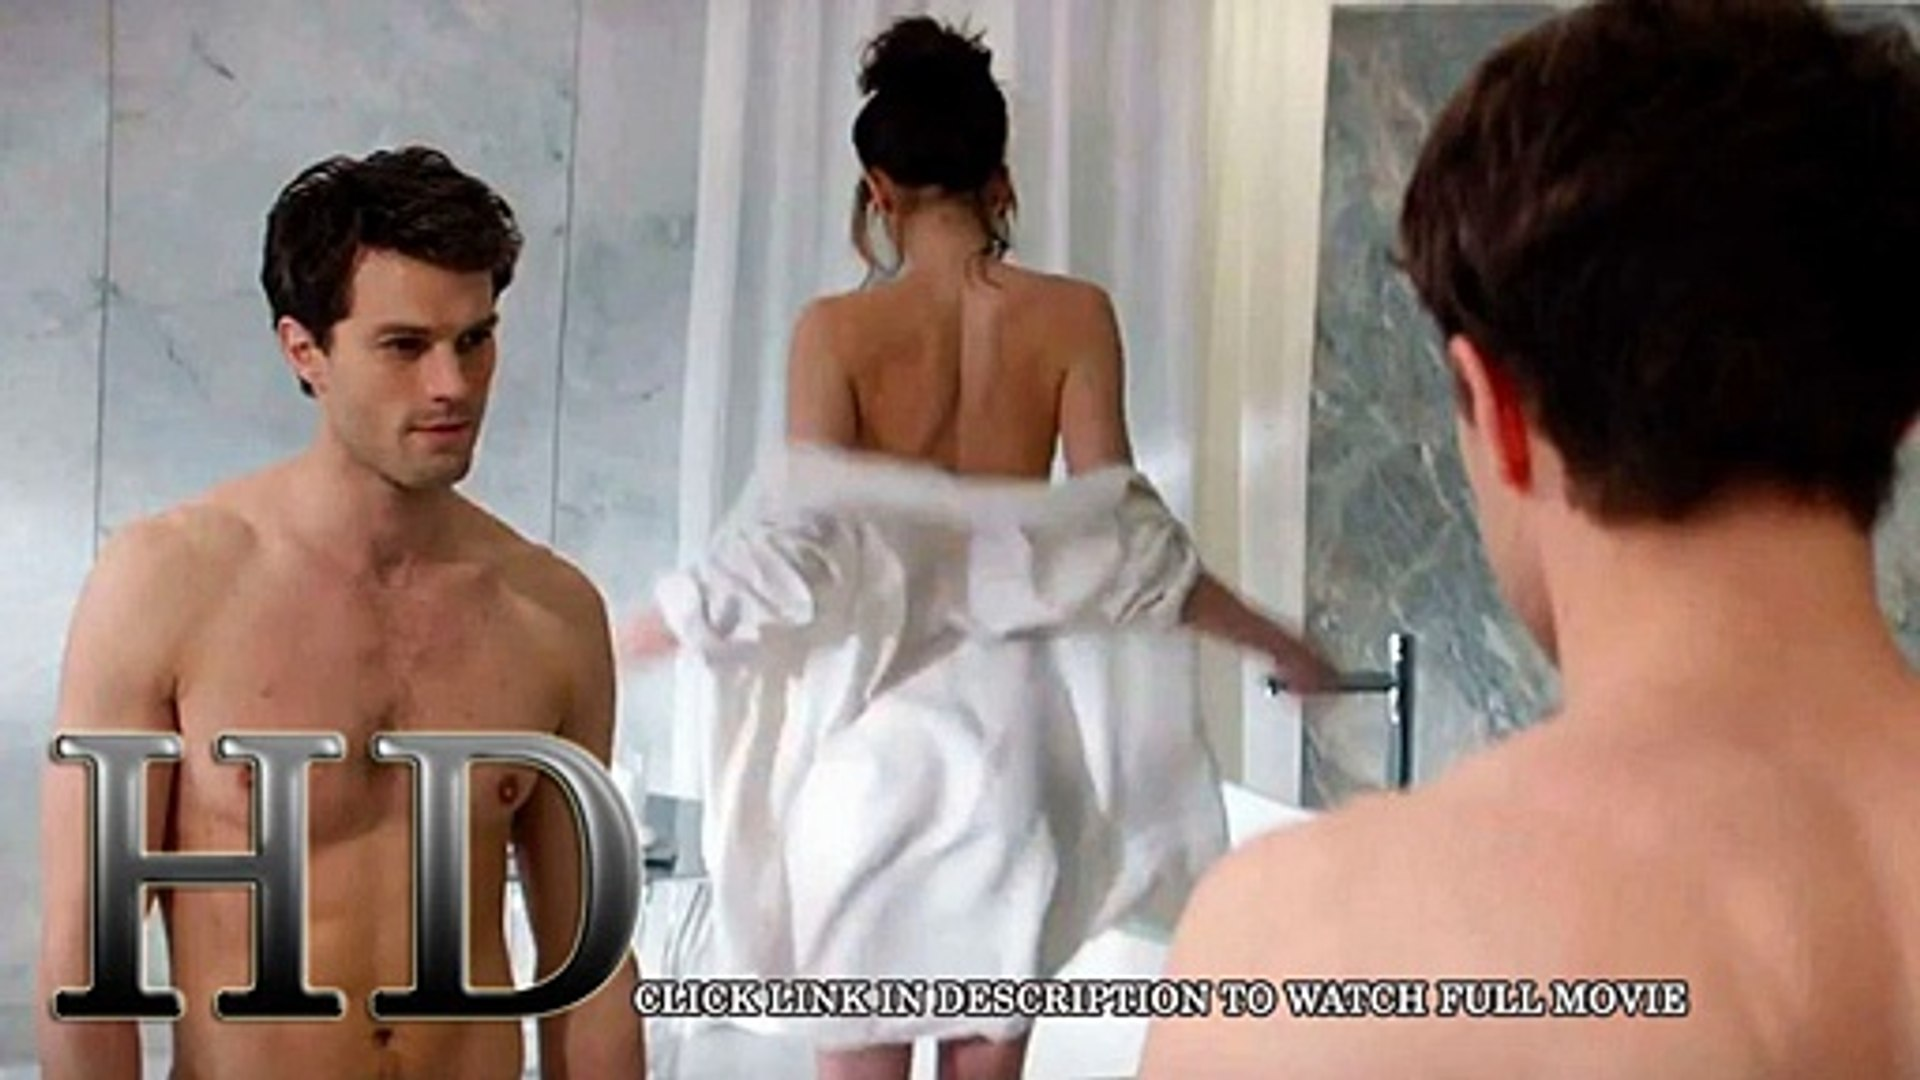 50 shades of grey watch free online movie